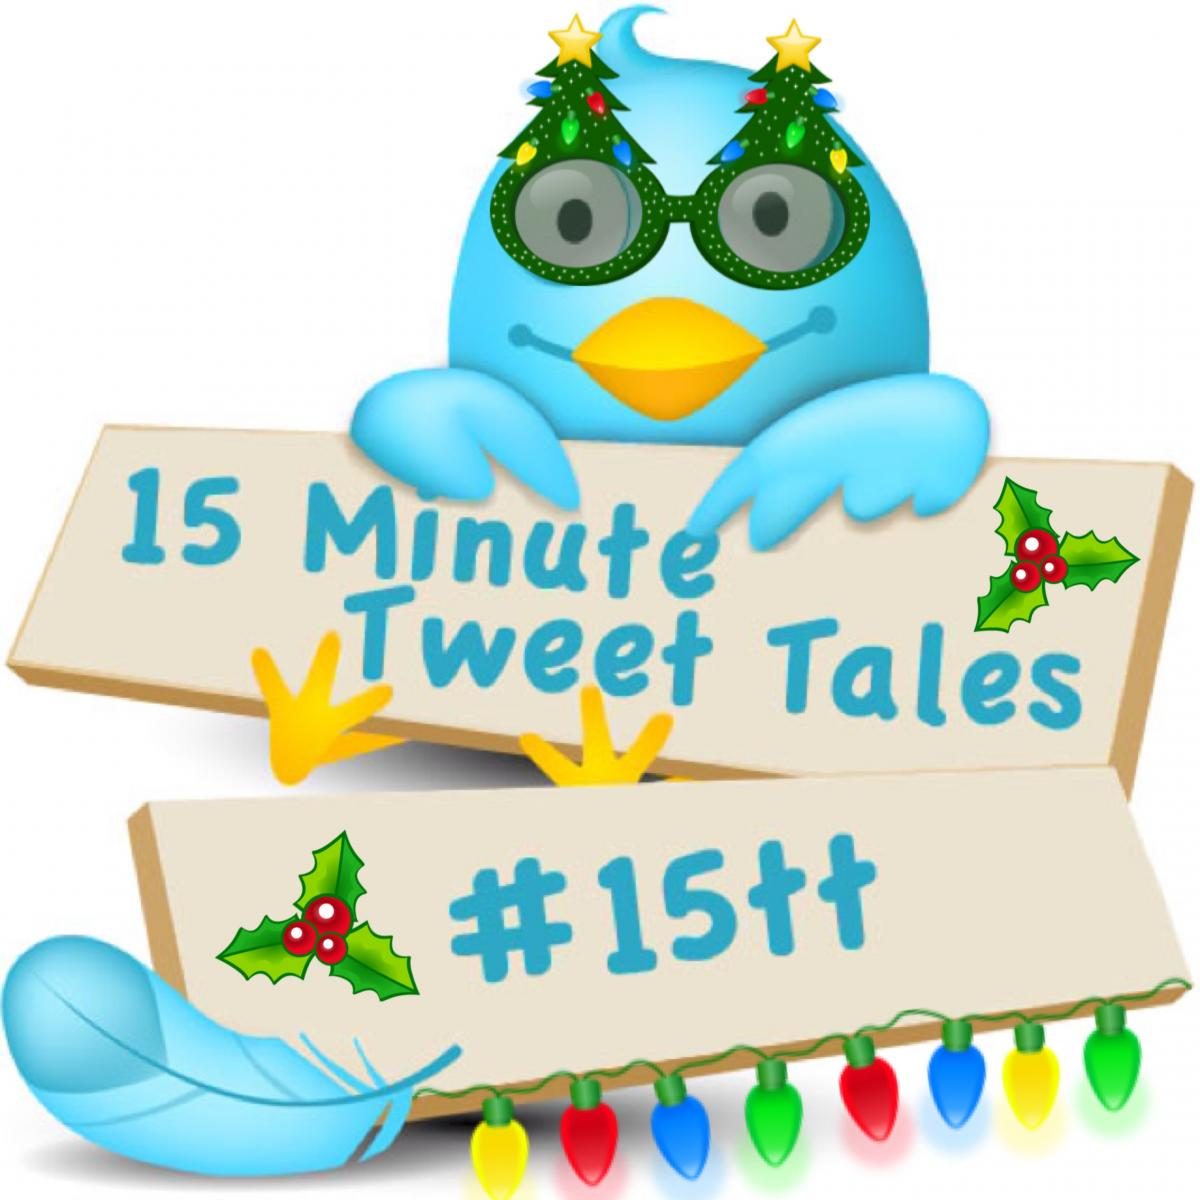 #15 Minute Tweet Tales Christmas